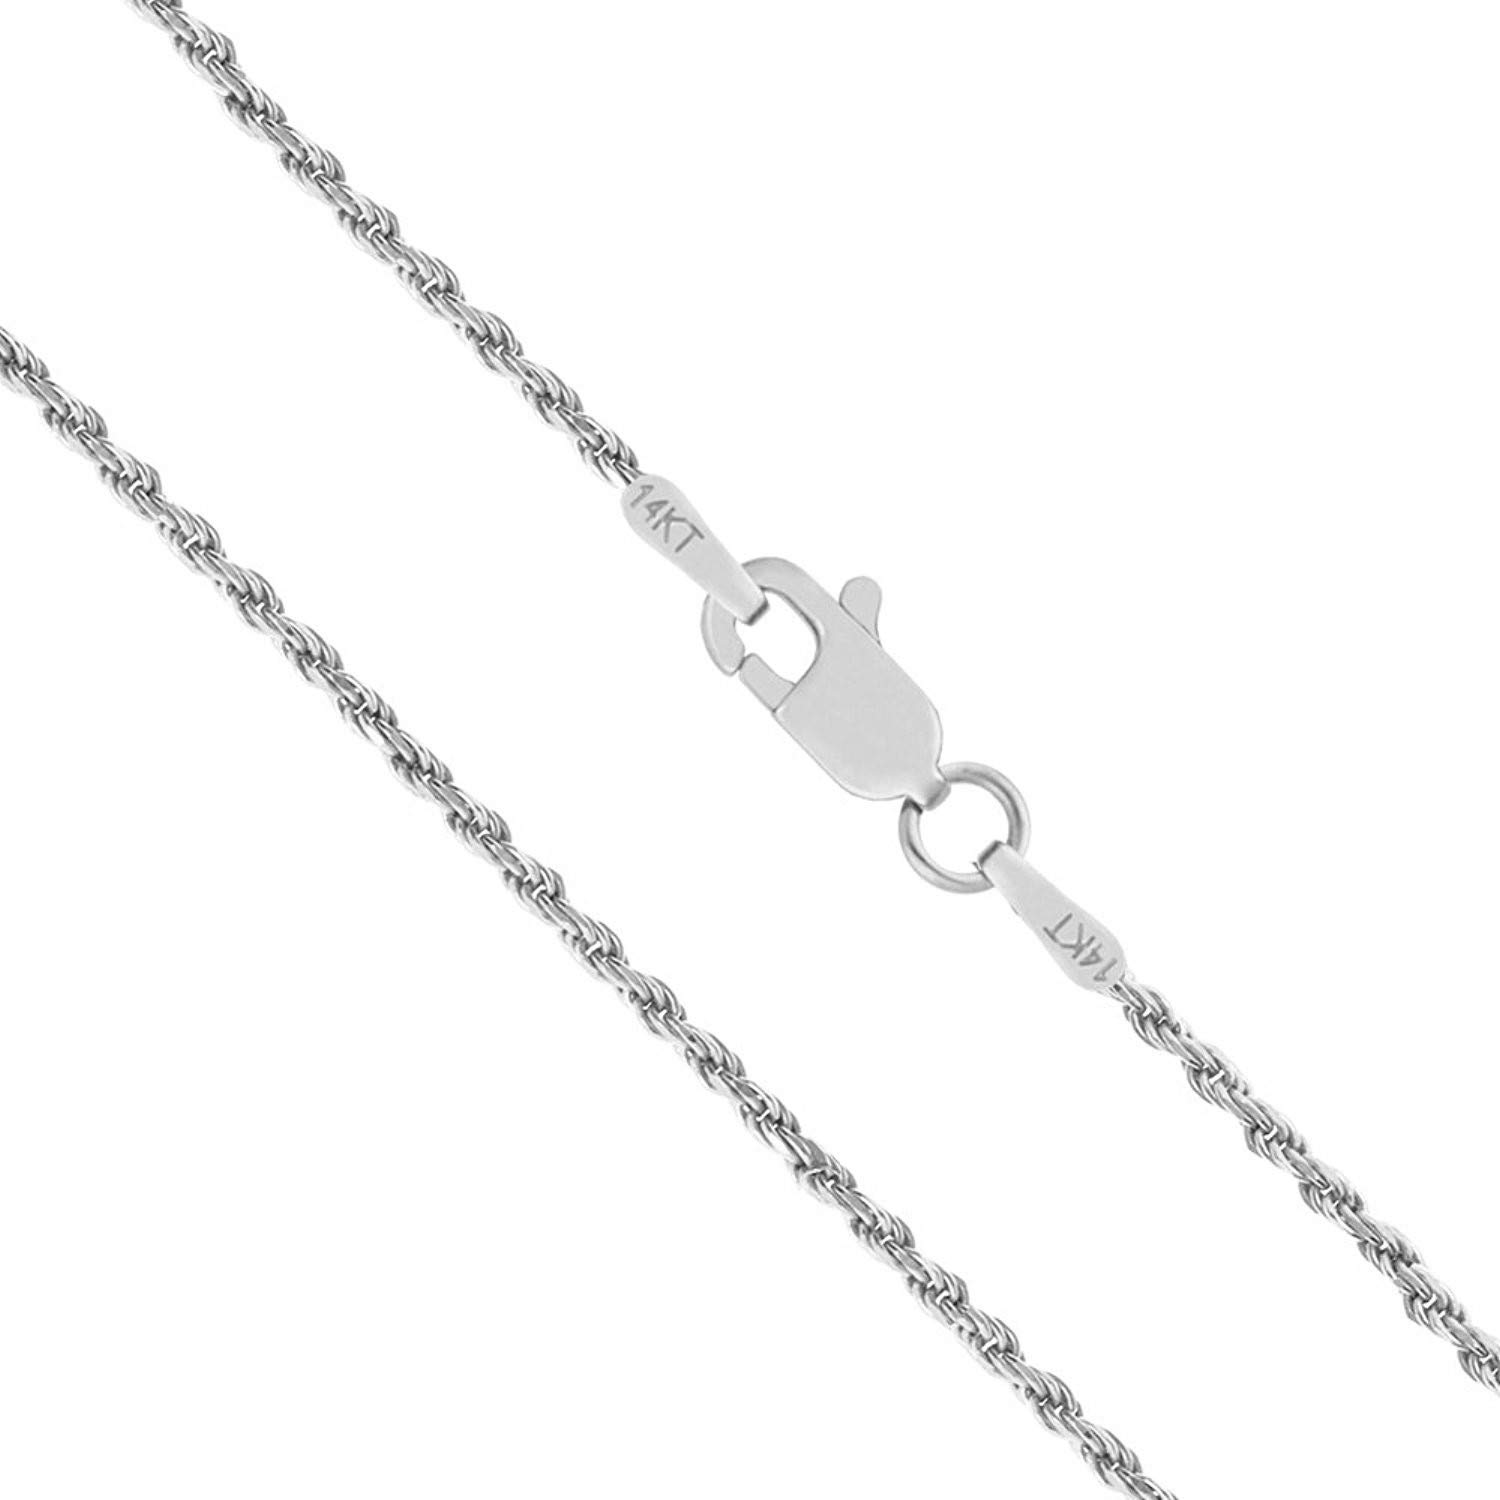 14K Yellow or White Gold 1.50mm Shiny Hollow Rope Chain Necklace for Pendants and Charms with Lobster-Claw Clasp 16, 18 or 20 inch